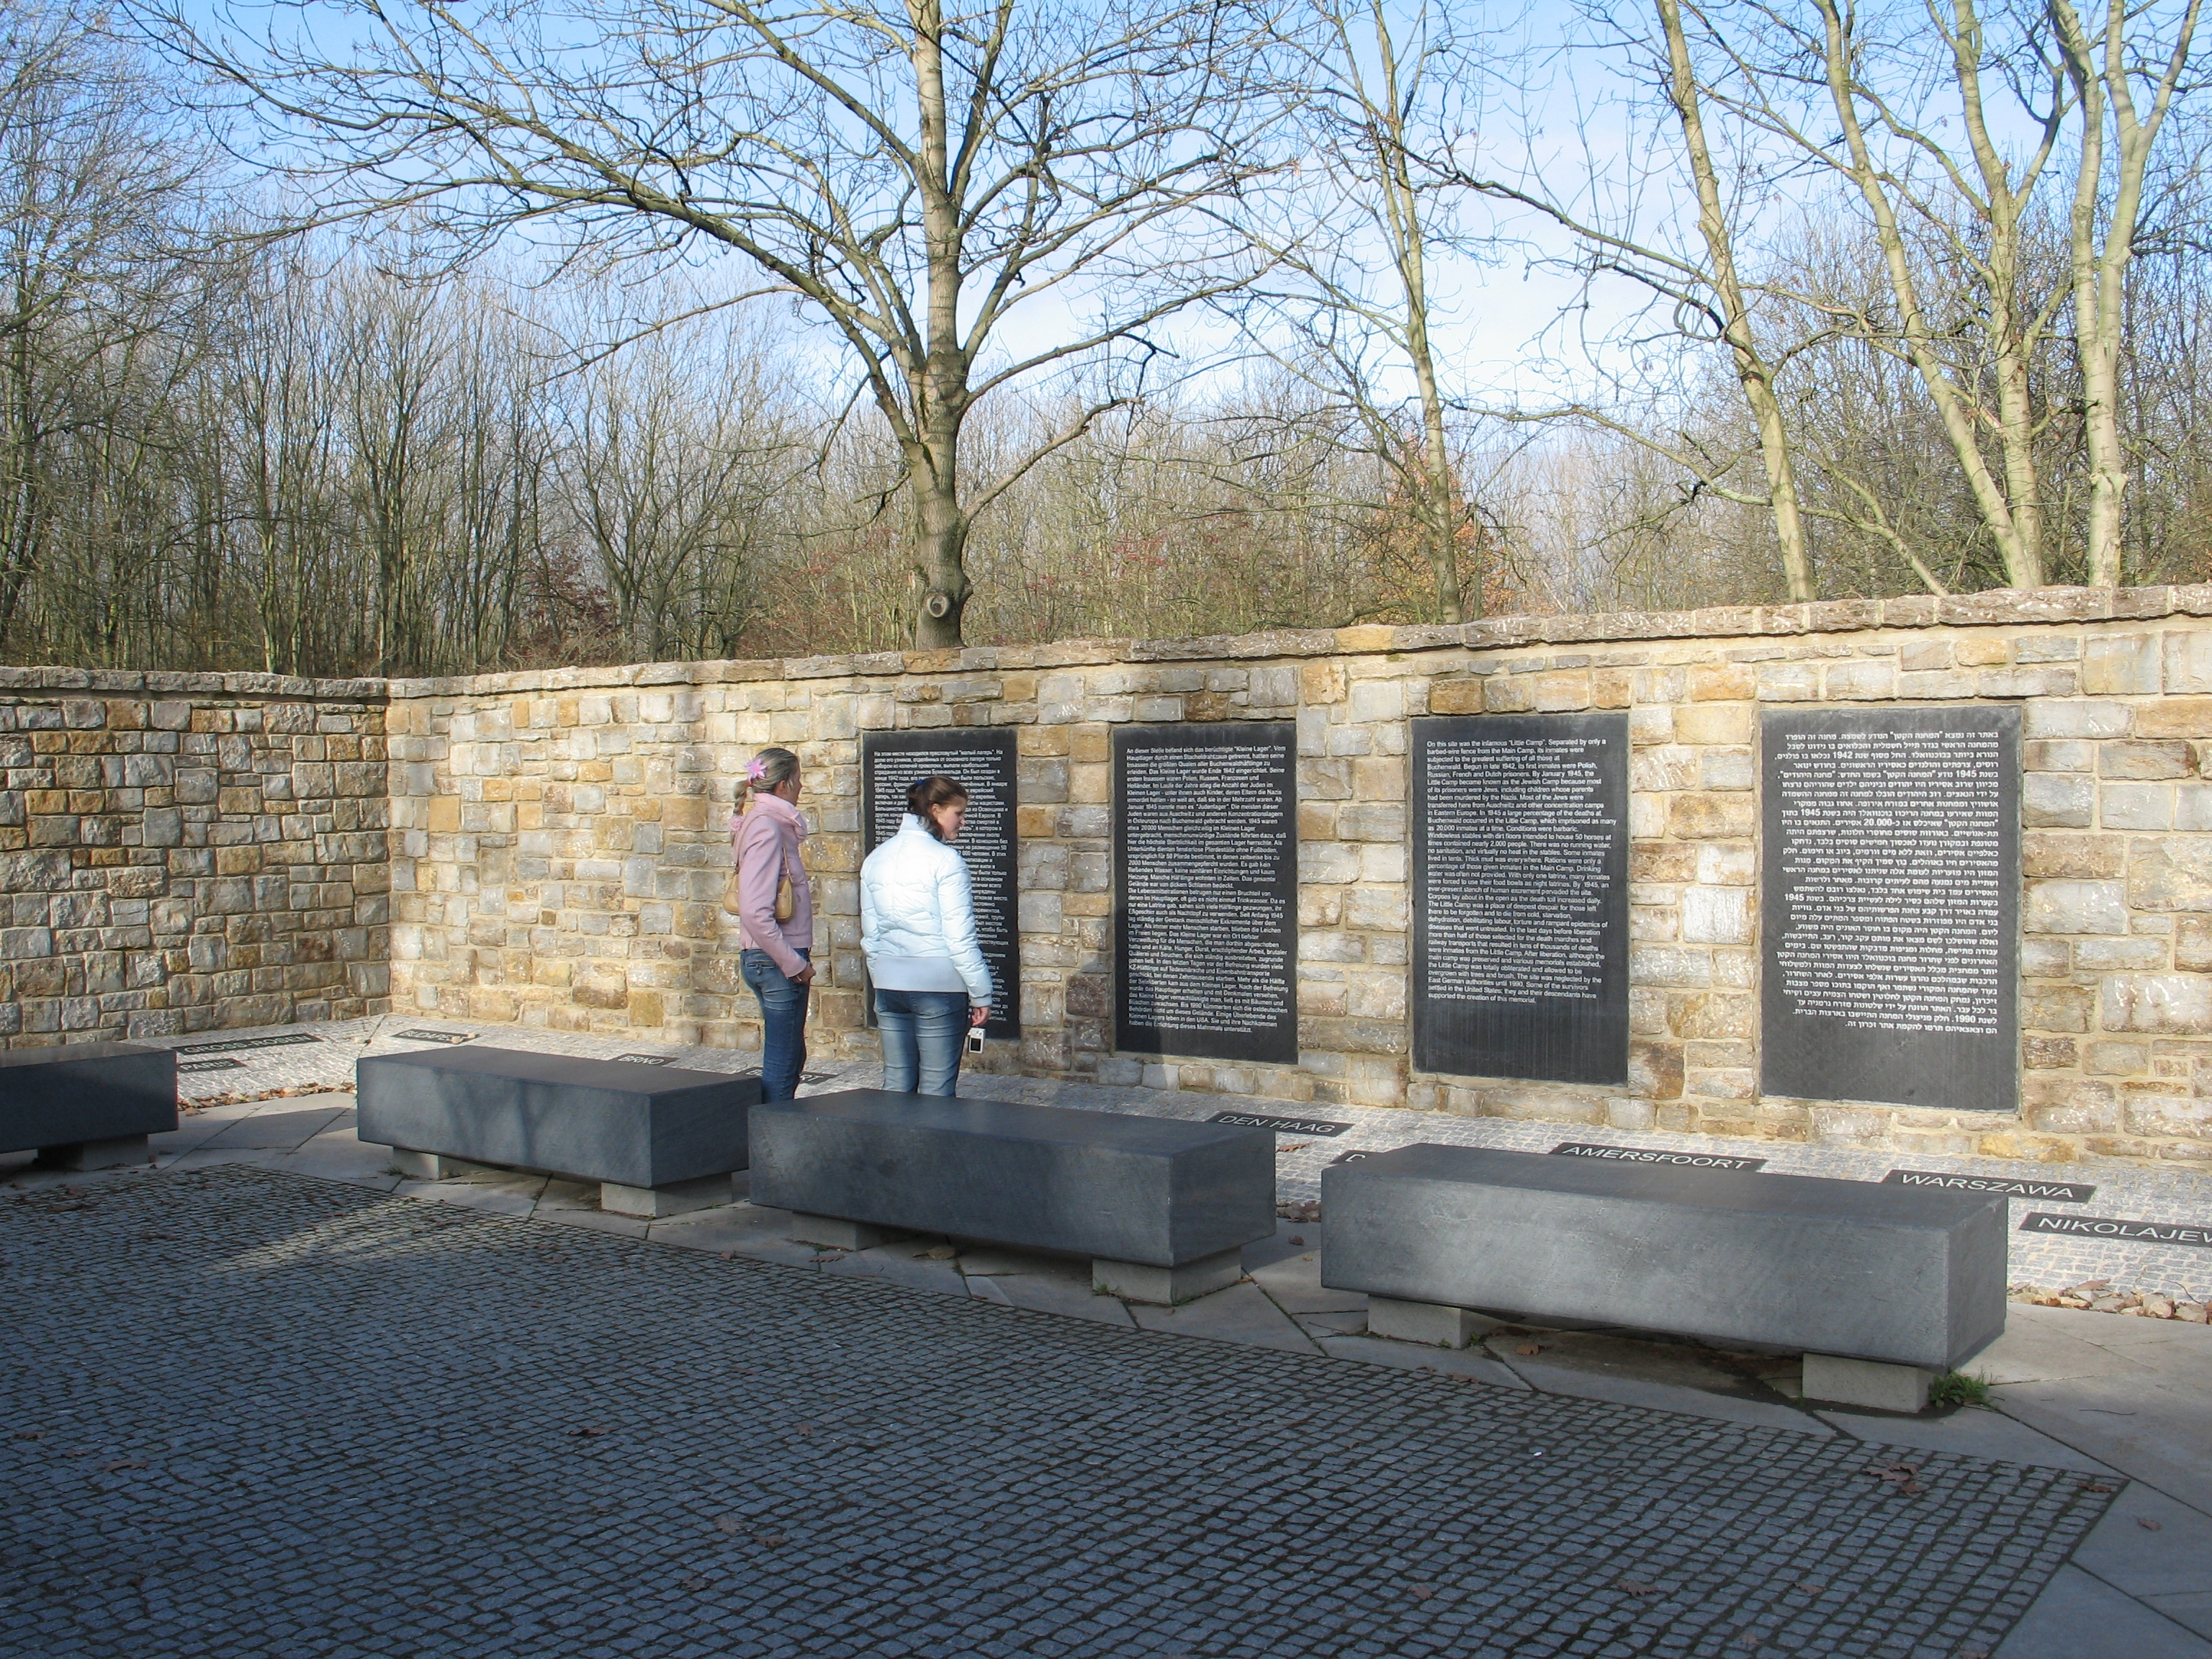 Little Camp (Buchenwald Concentration Camp) English Marker